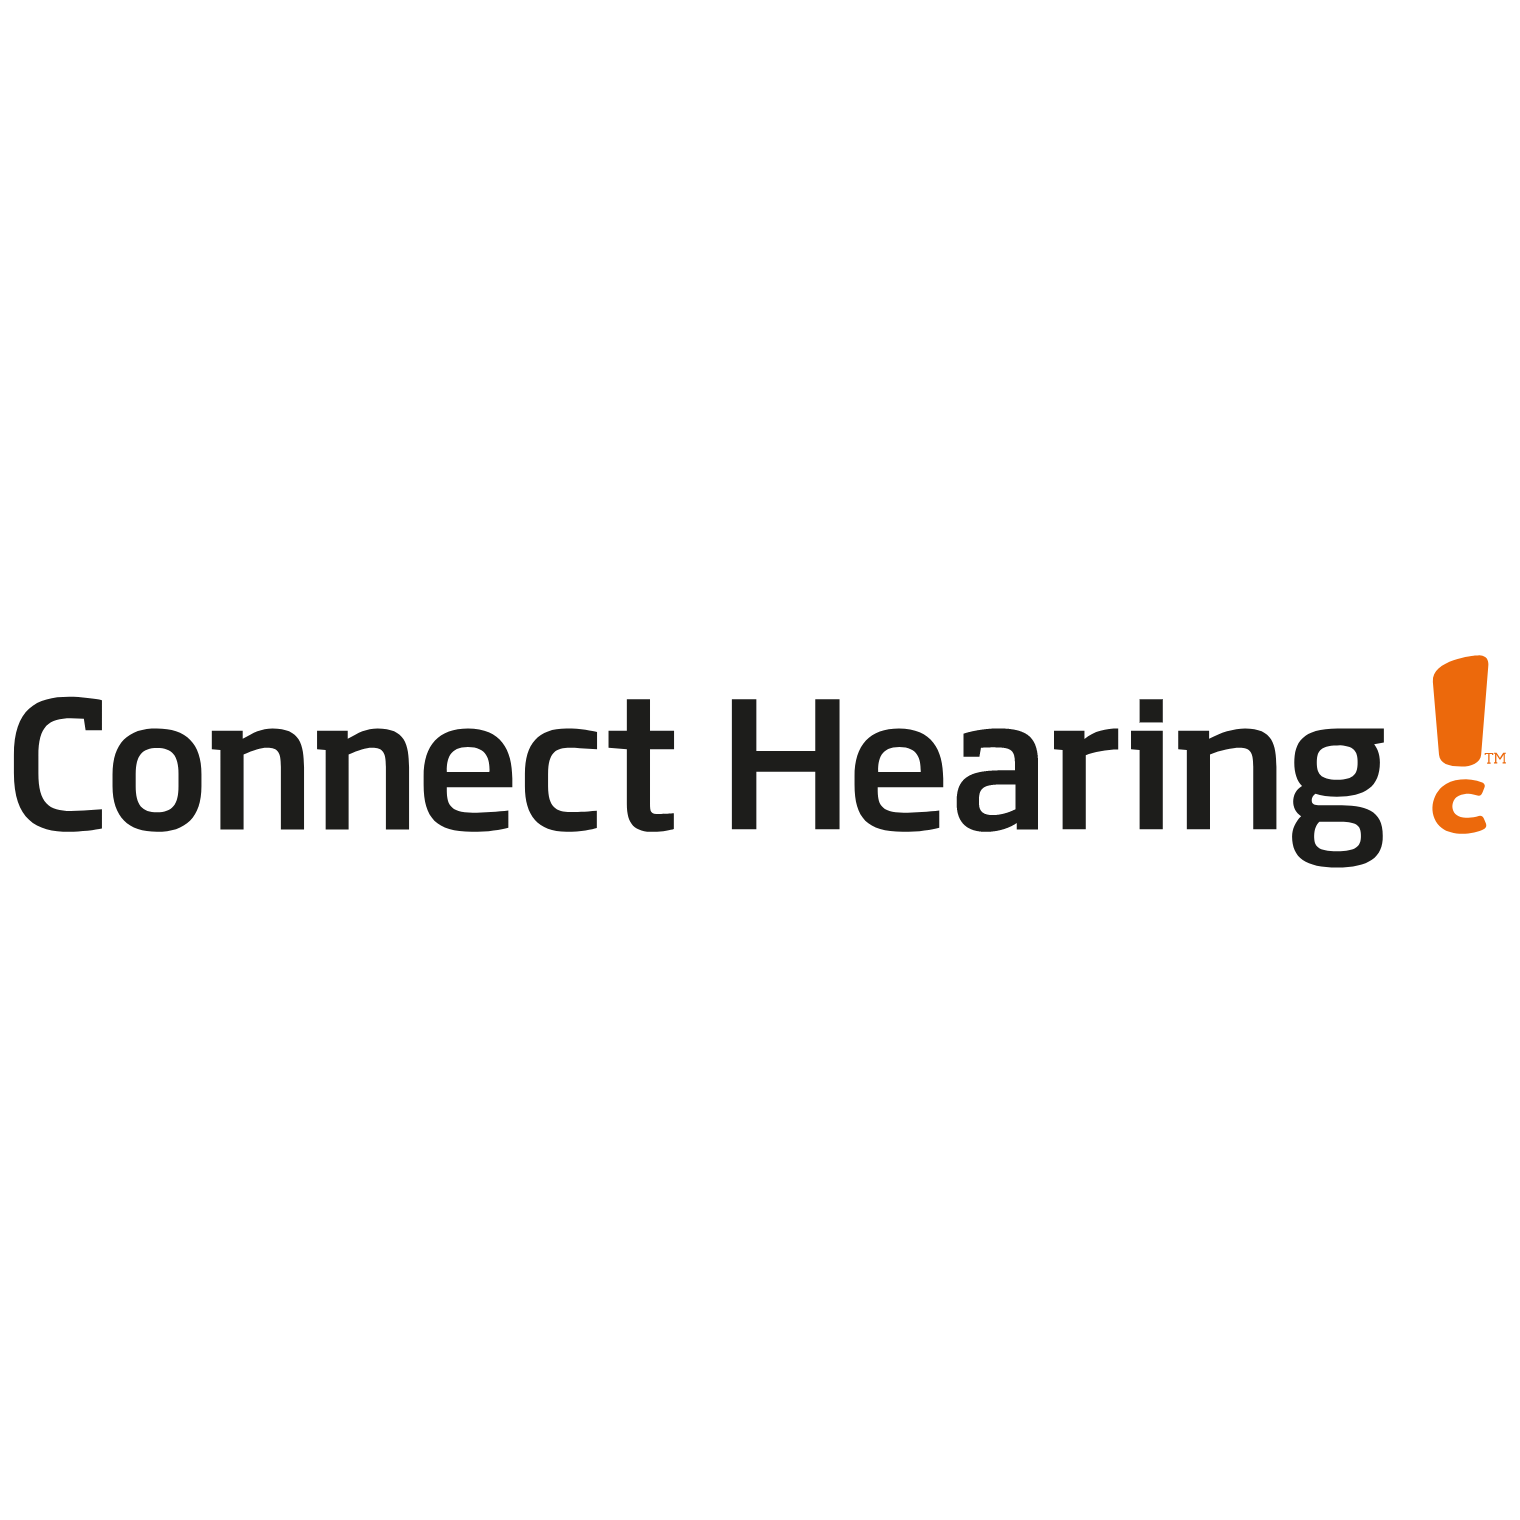 Connect Hearing - West Wyalong, NSW 2671 - (02) 9394 8870 | ShowMeLocal.com